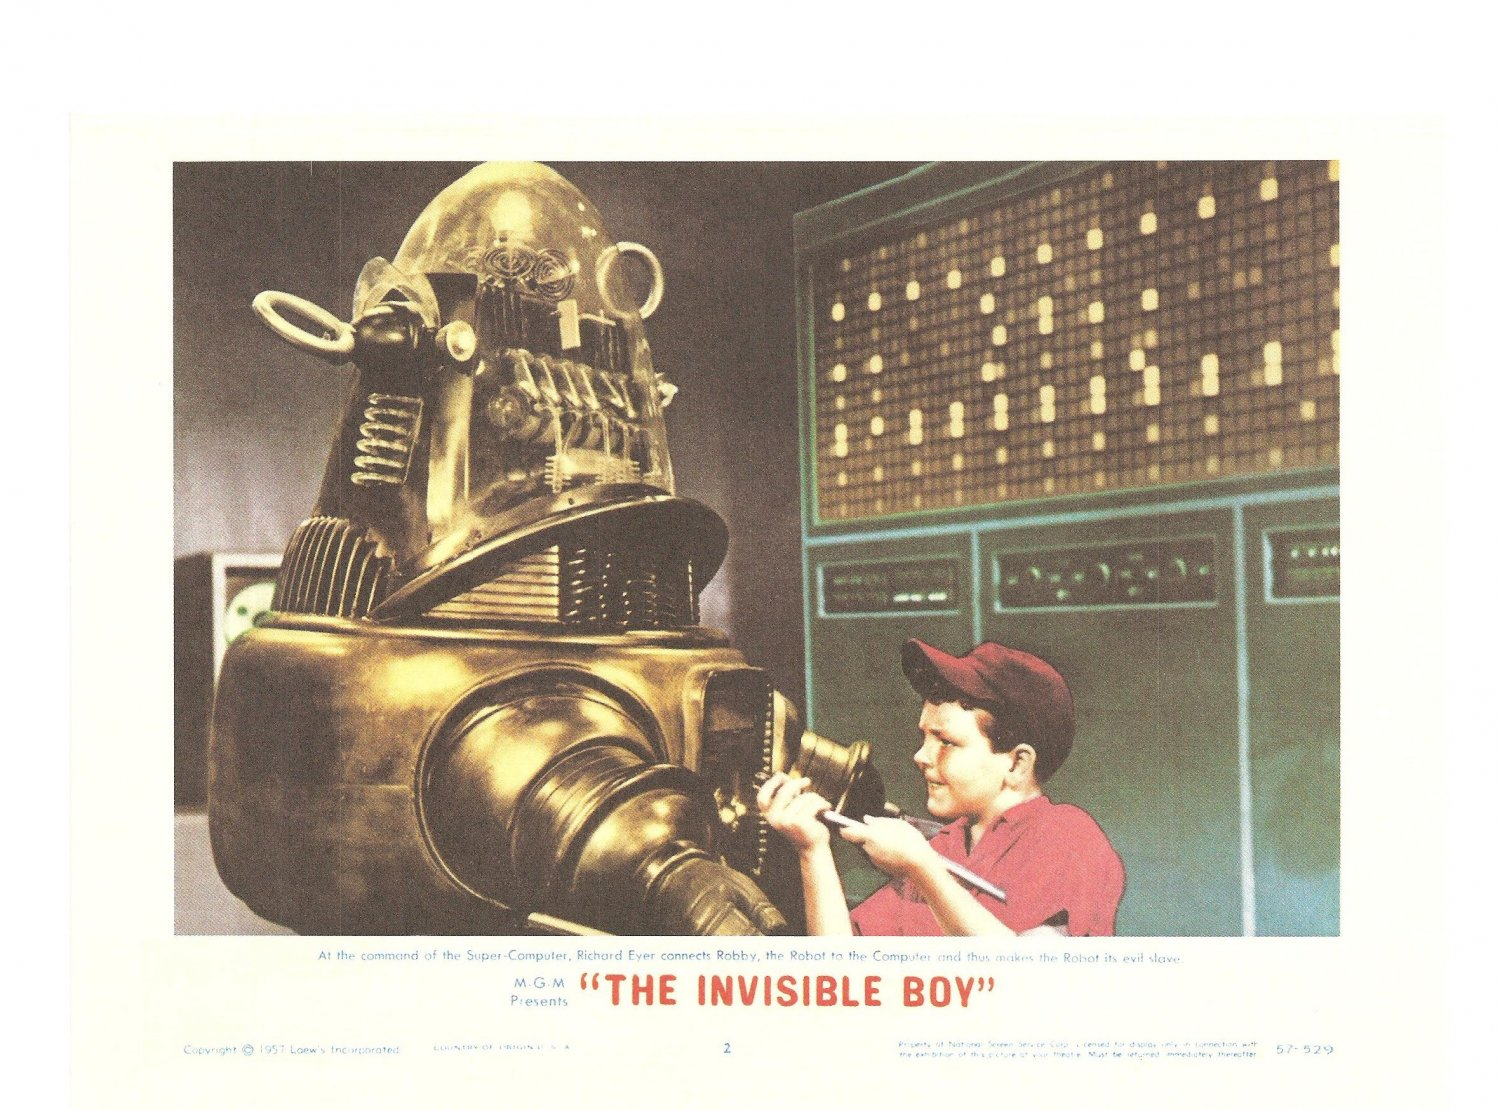 The Invisible Boy Forbidden Planet Lobby Card Repro 2006 Turner Entertainment Evil Slave Promo